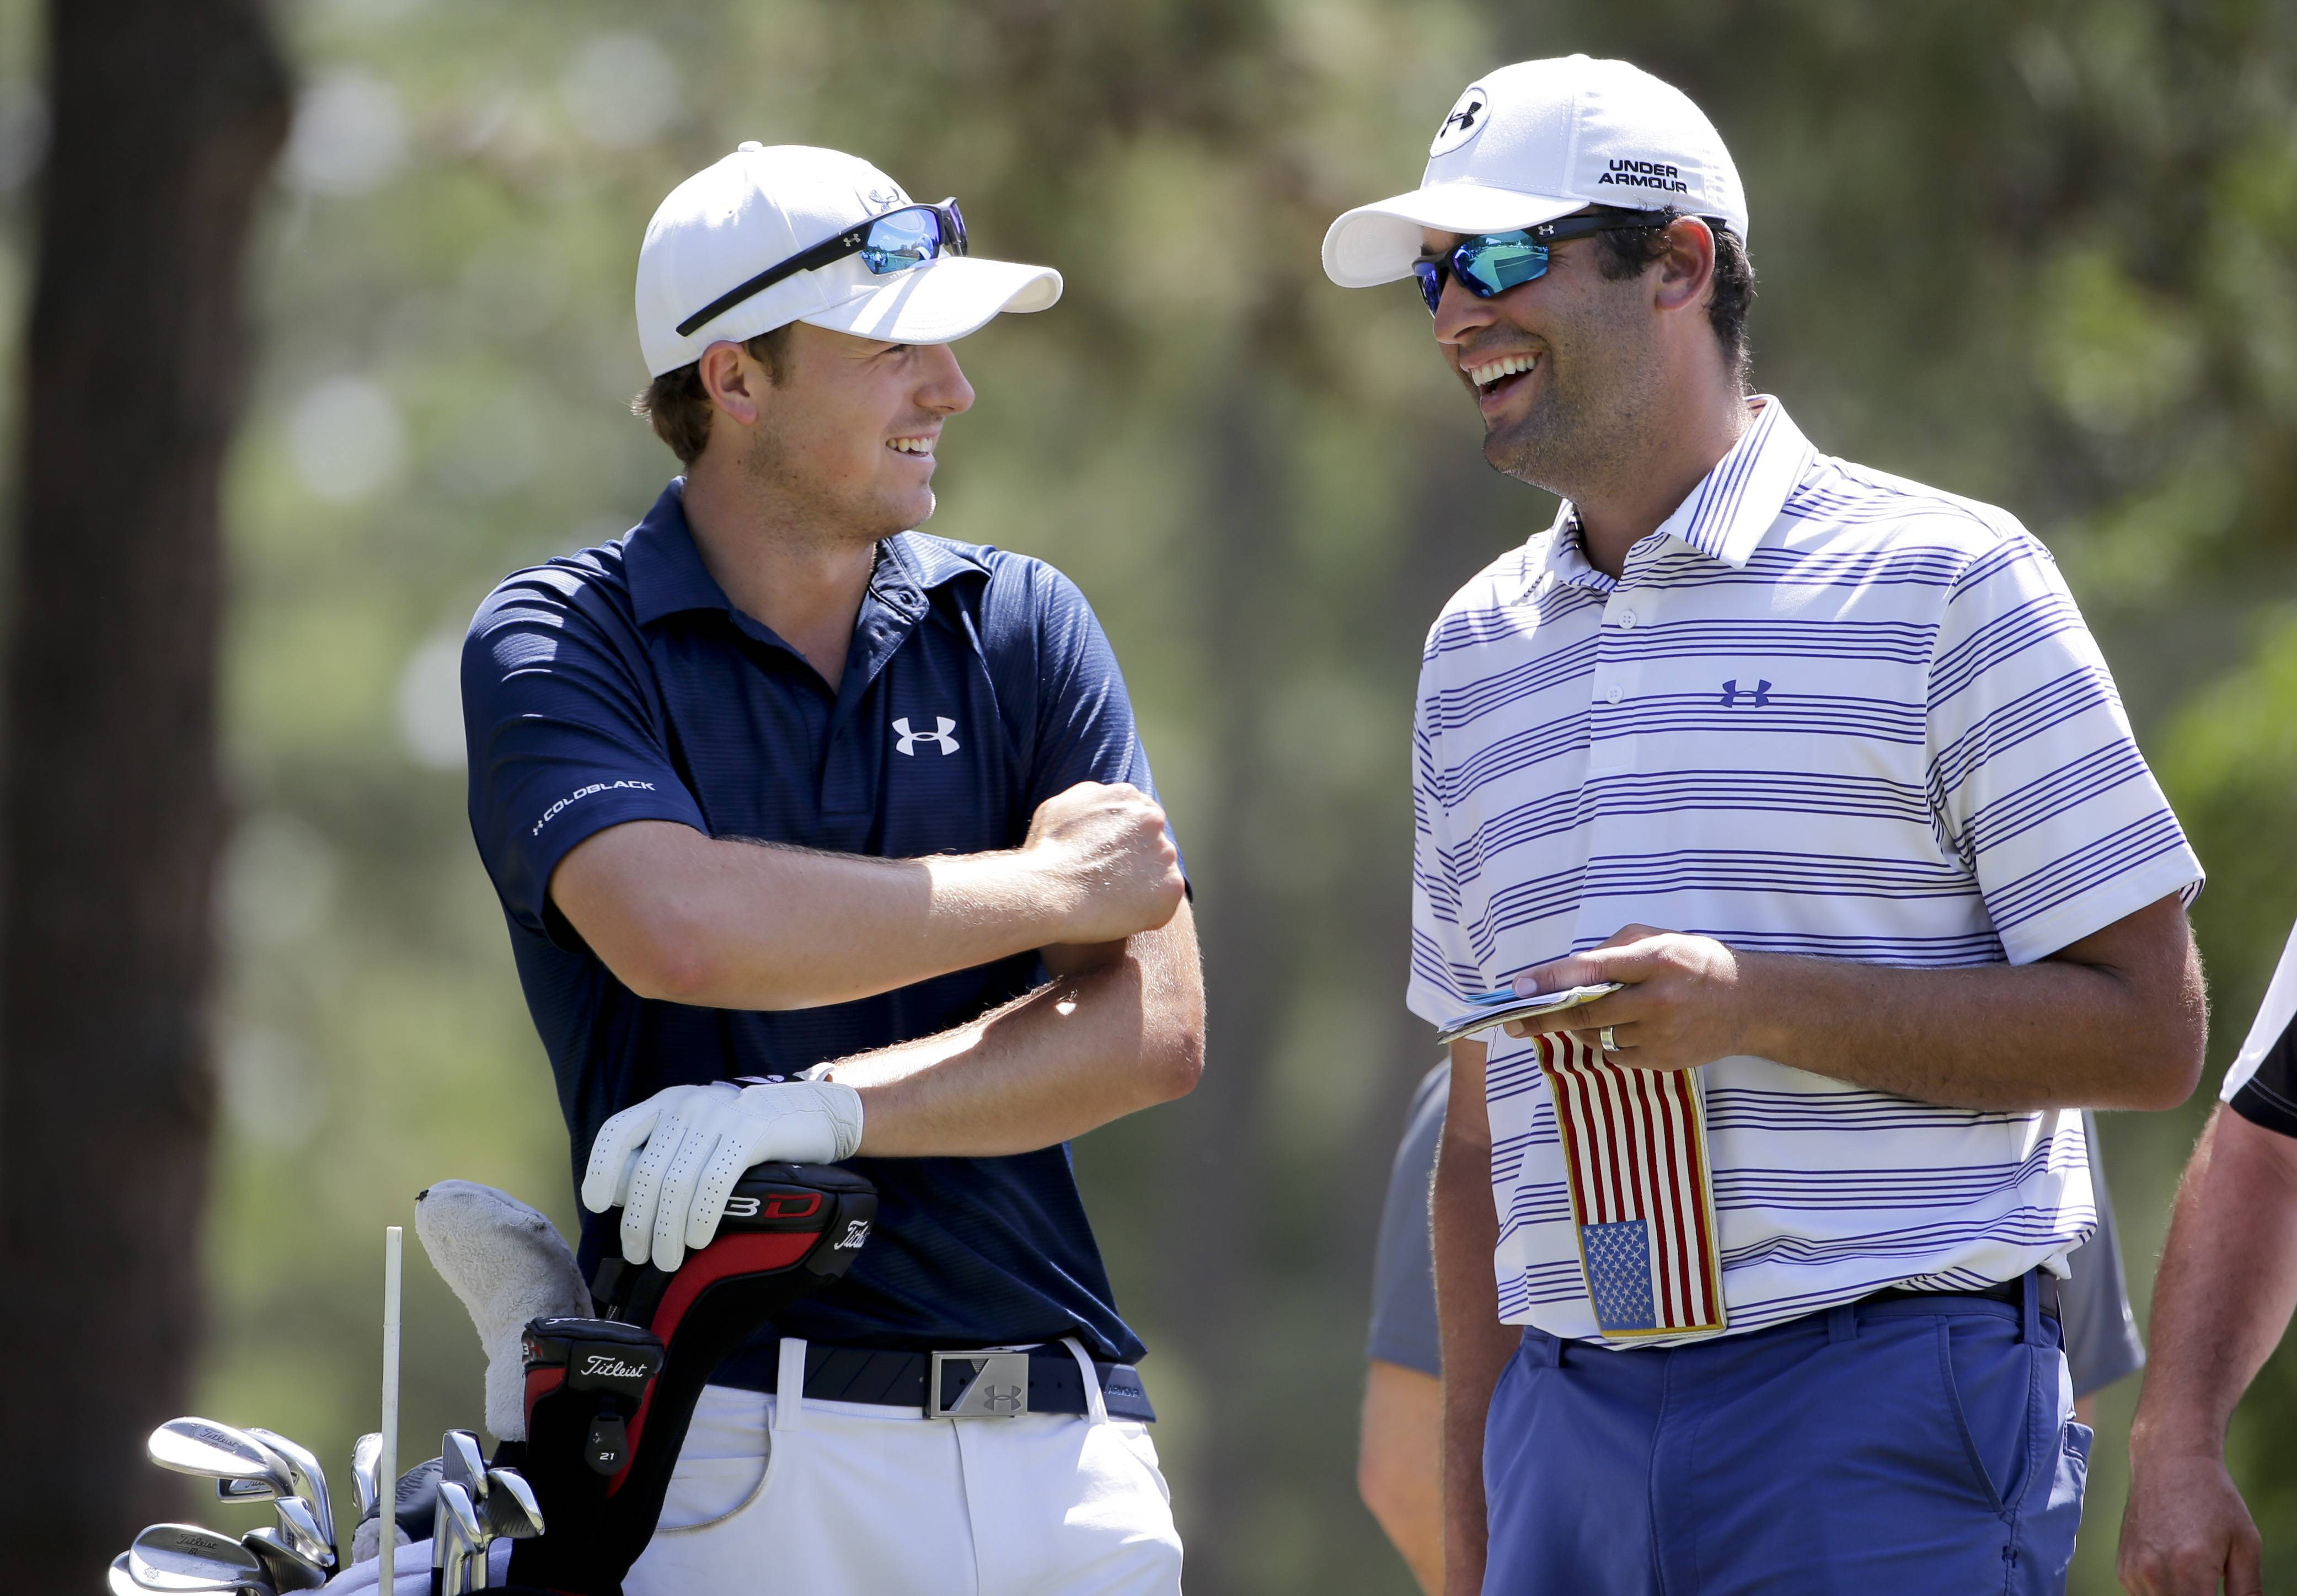 Jordan Spieth, left, and caddie Michael Greller talk on the 14th hole during a practice round for the U.S. Open golf tournament in Pinehurst, N.C., Tuesday, June 10, 2014. The tournament starts Thursday.